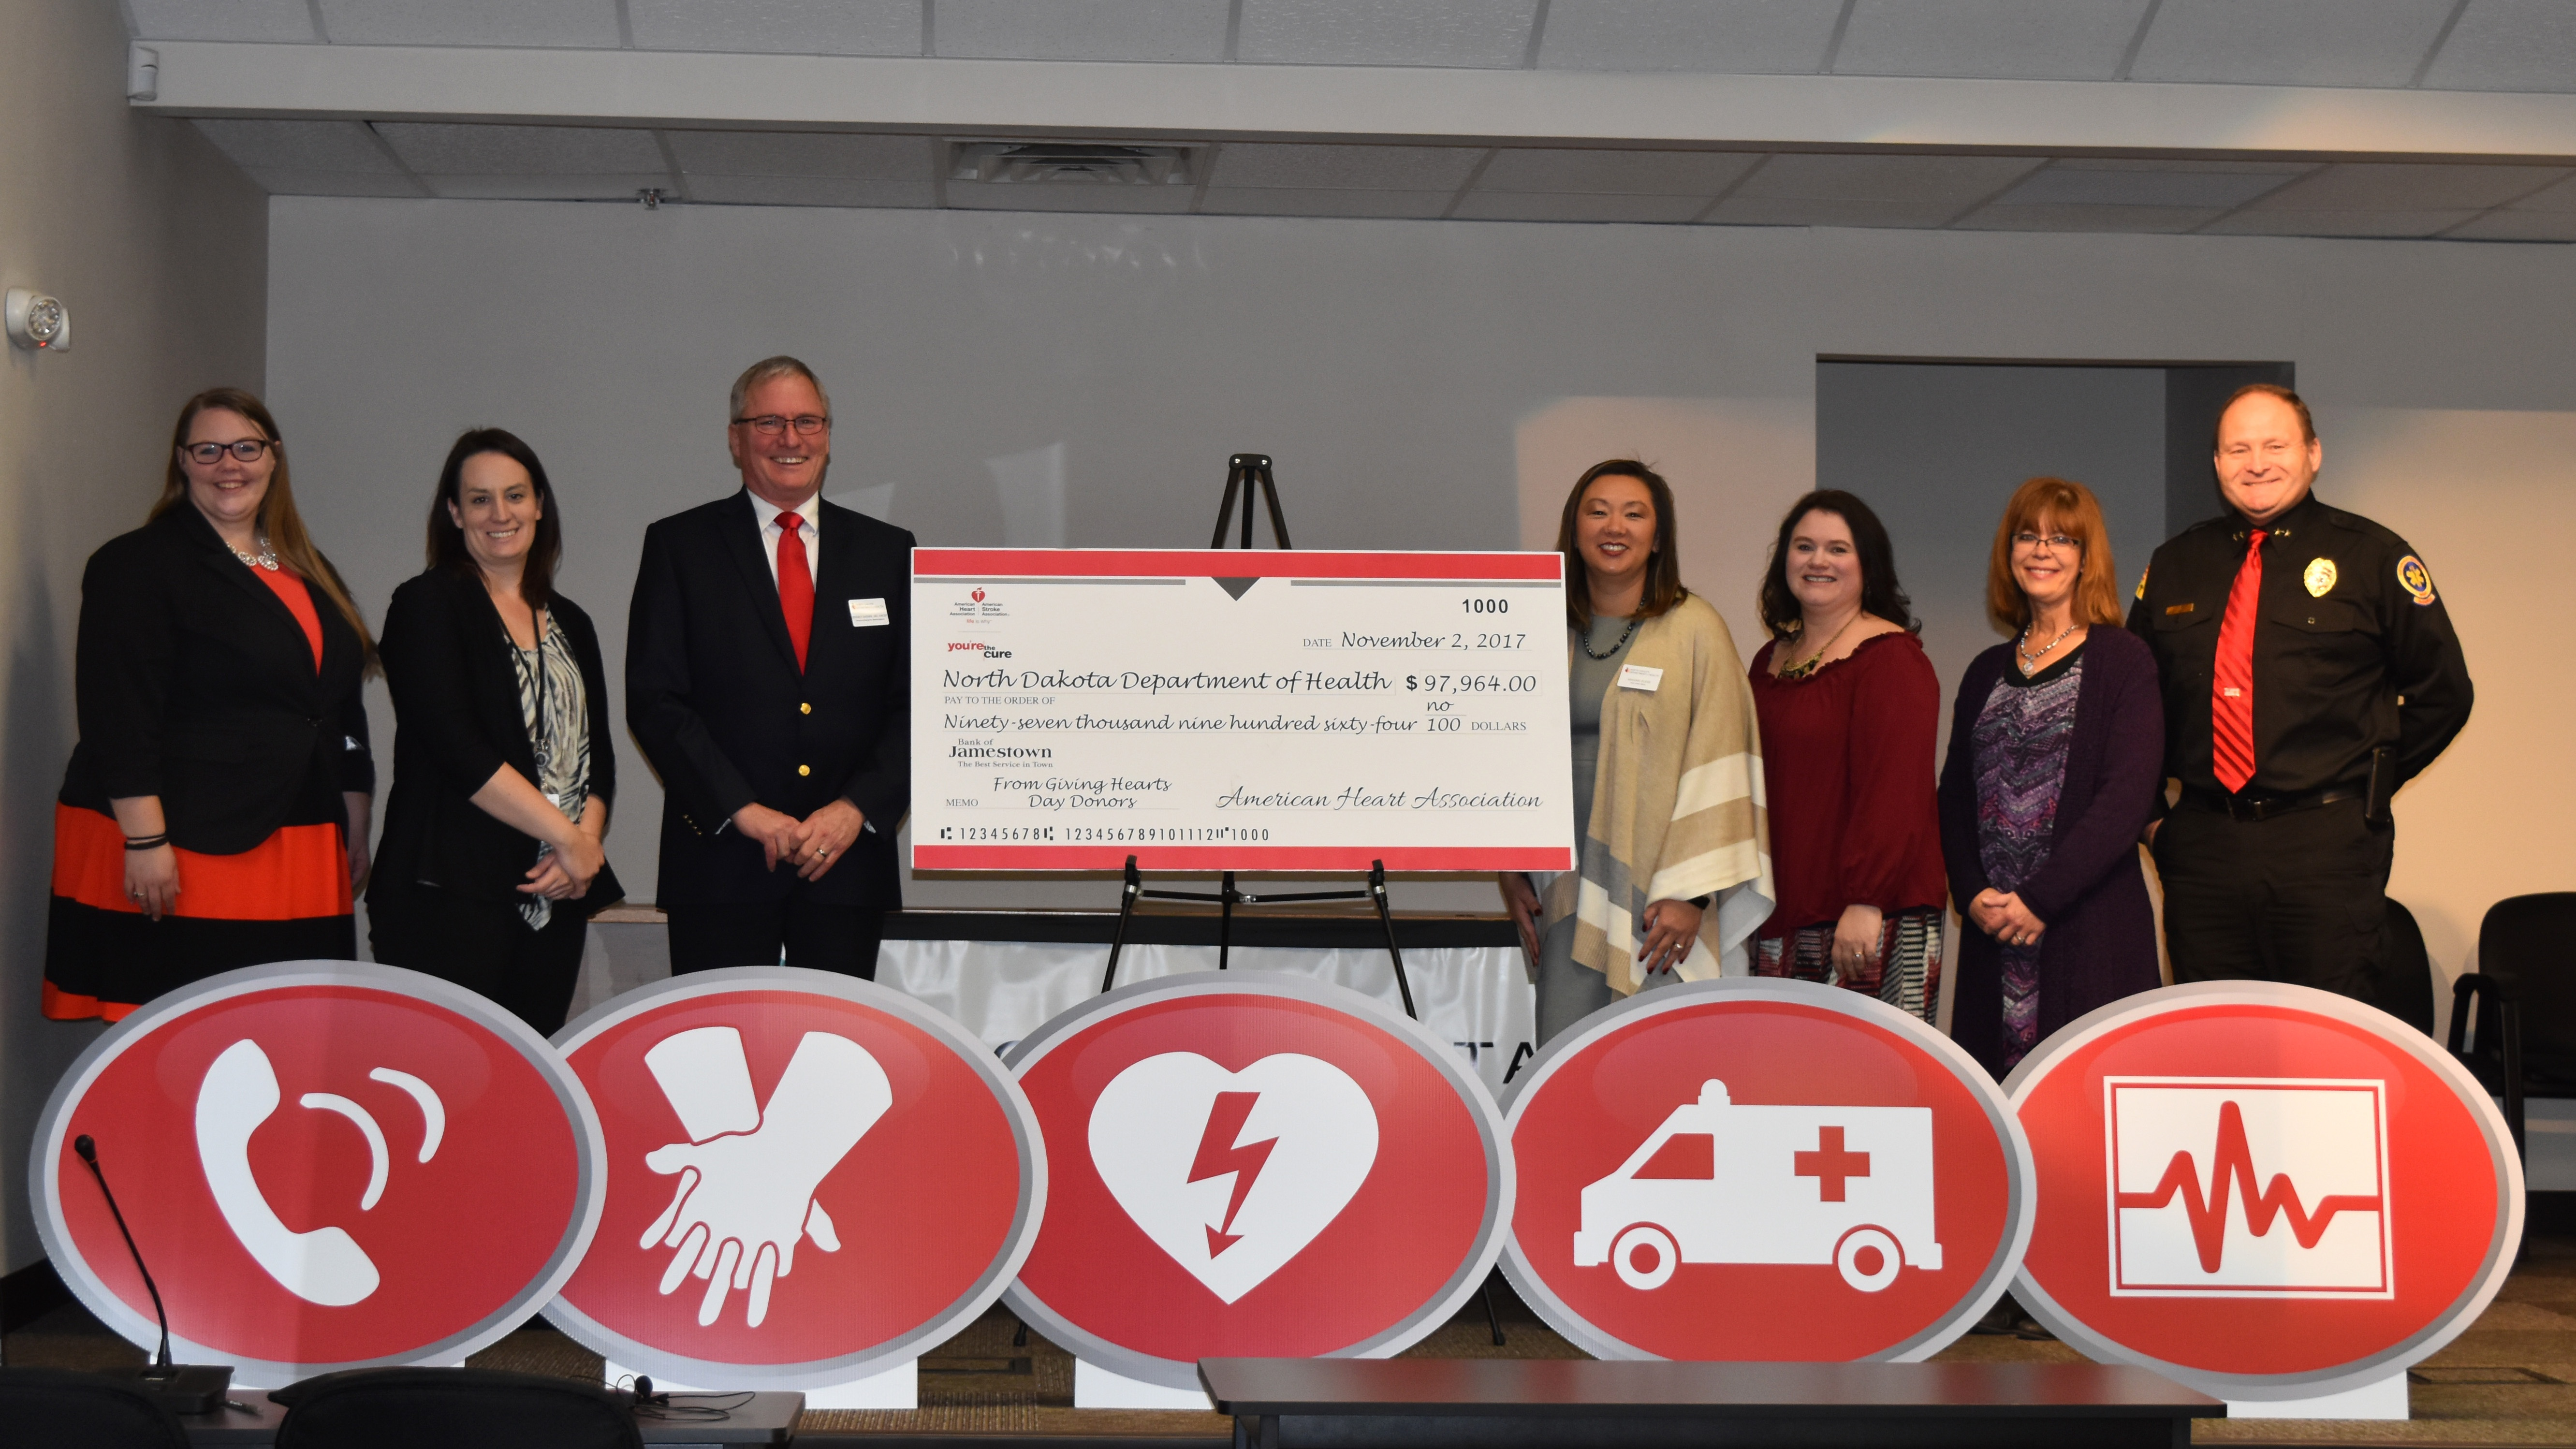 American Heart Association grants North Dakota Department of Health $97,964  for Cardiac Ready Communities